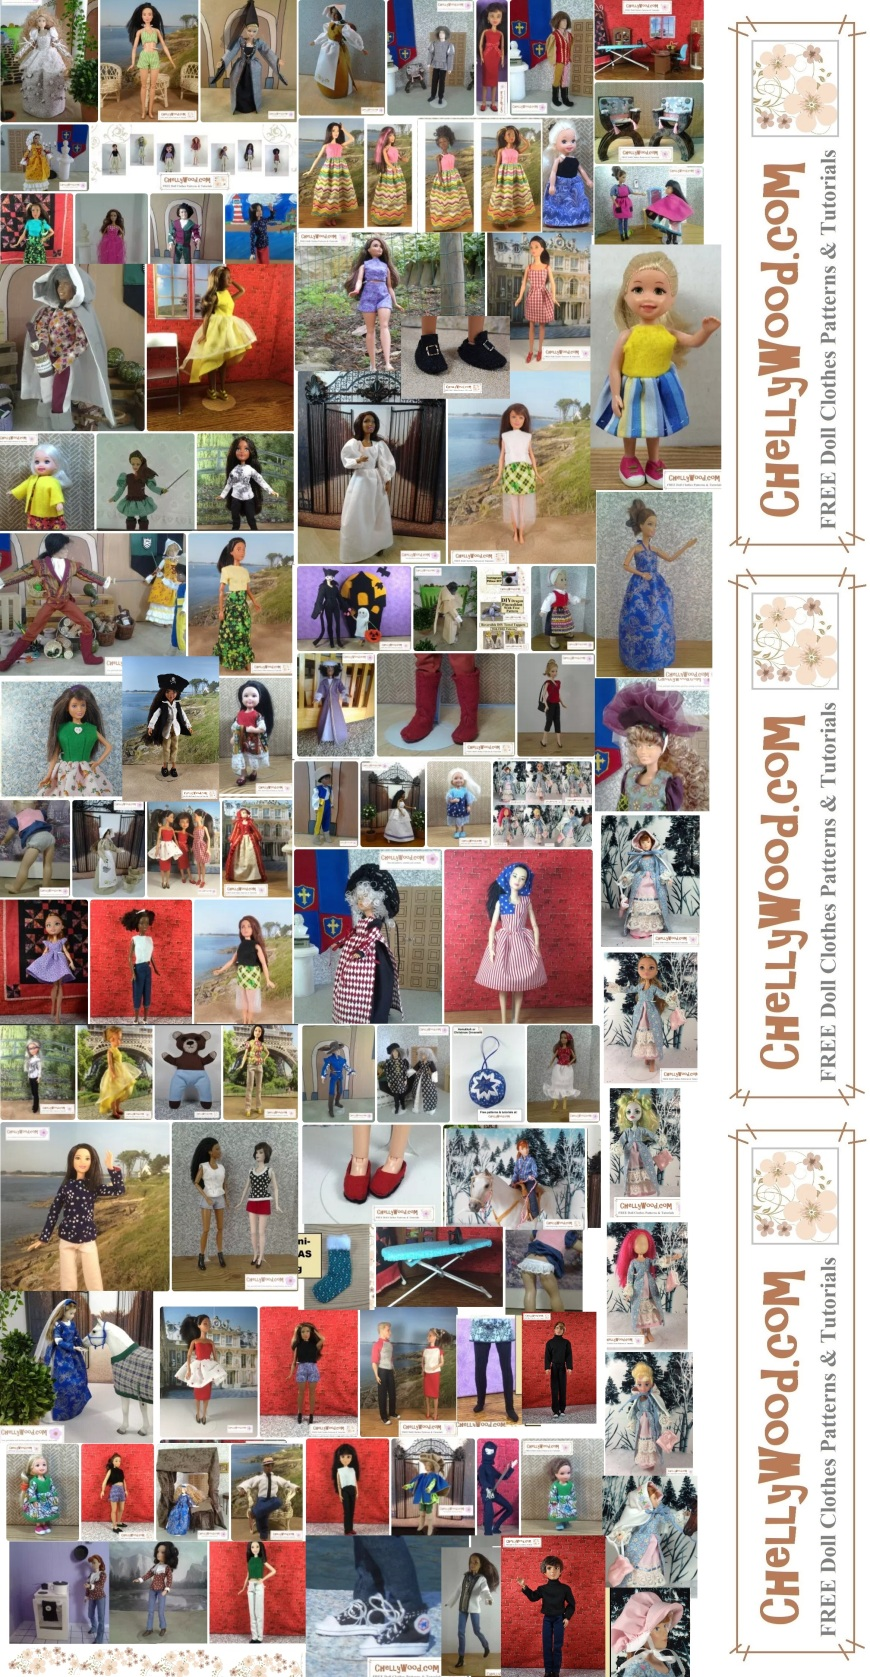 """Visit ChellyWood.com for free, printable sewing patterns for dolls of many shapes and sizes. Image shows a collage of 105 different doll outfits and sewing/craft projects designed by Chelly Wood. Each of these comes with free, printable sewing patterns (found at ChellyWood.com). Overlay says, """"ChellyWood.com: FREE doll clothes patterns and tutorials."""""""